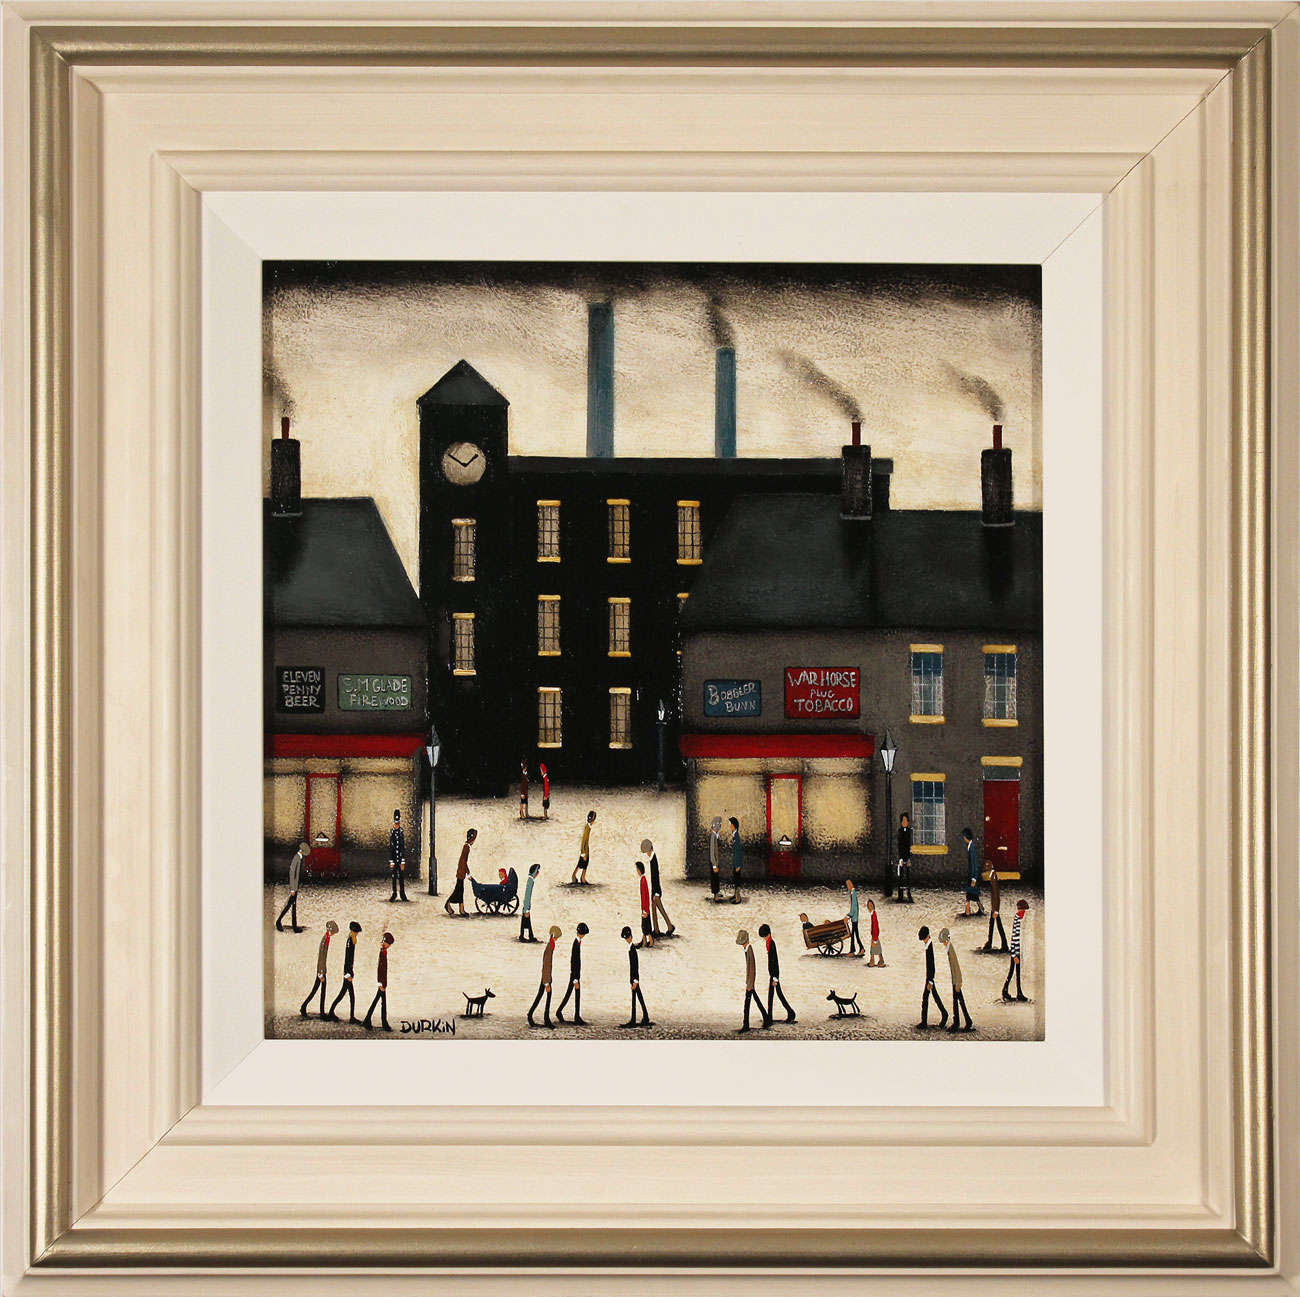 Sean Durkin, Original oil painting on panel, The Old Factory. Click to enlarge